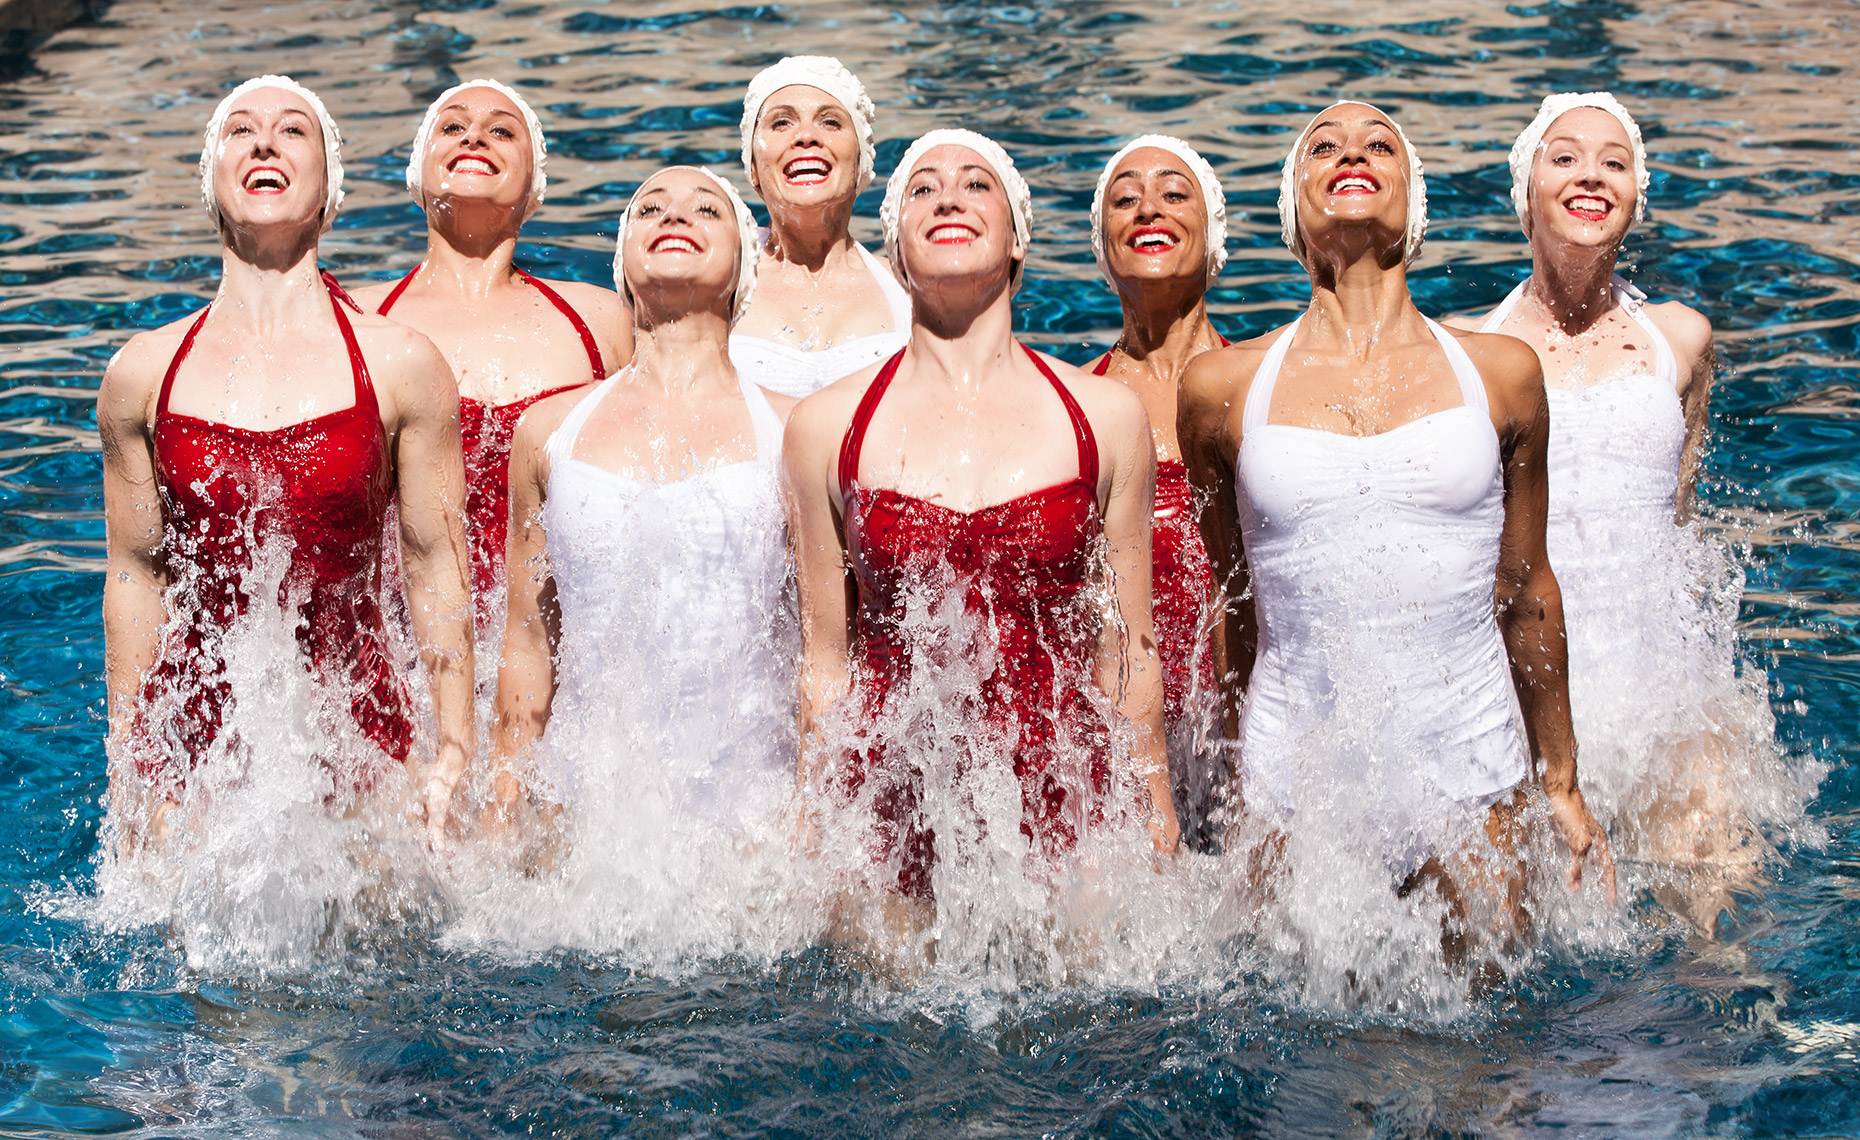 Eight women wearing white and red swimsuits jumping out of the water in unison. Advertising